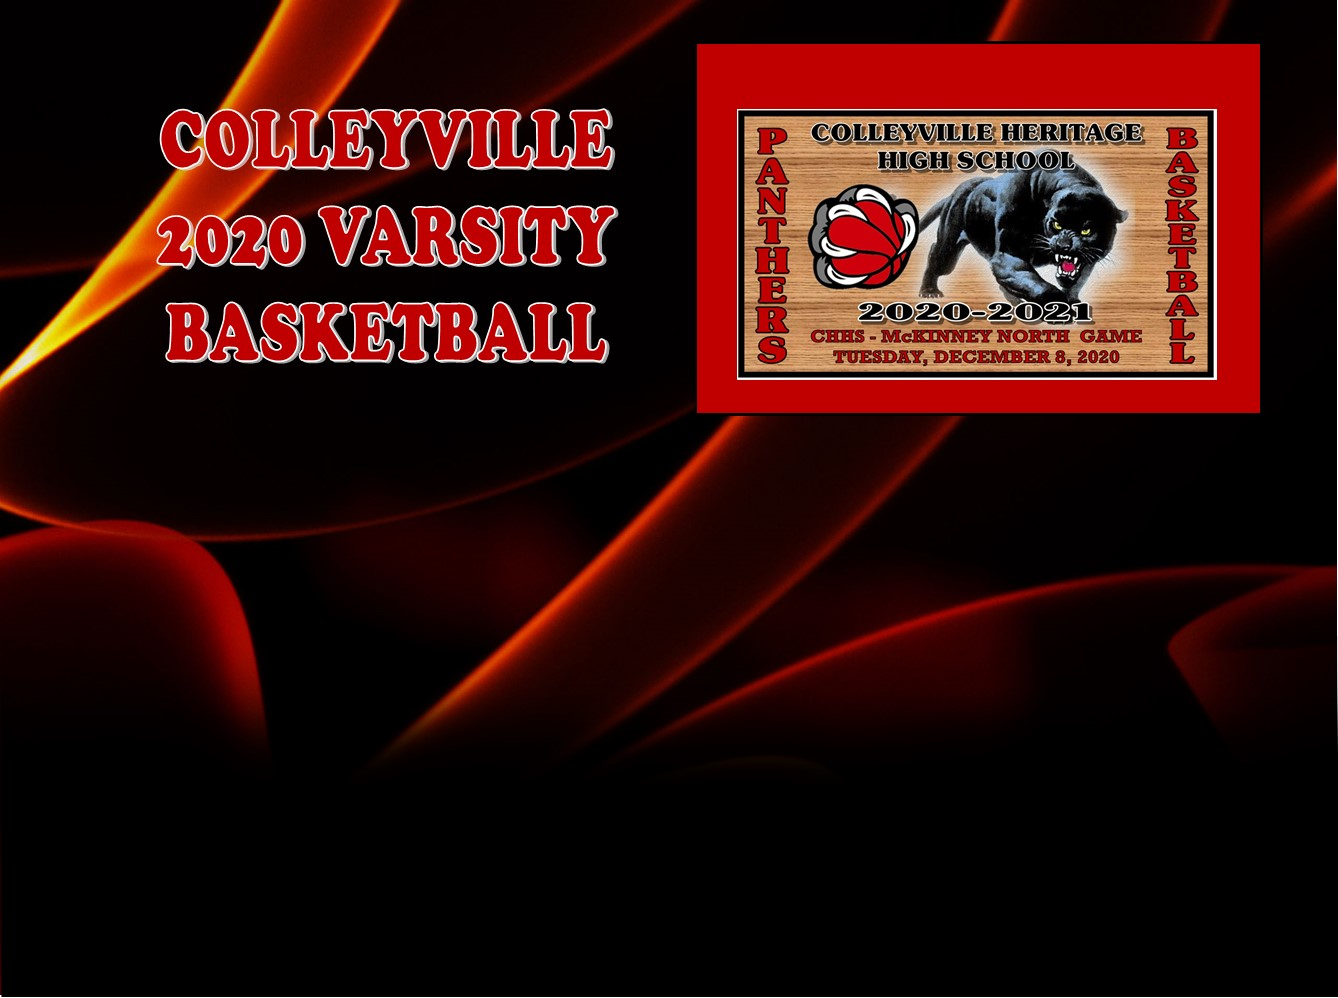 GCISD Basketball: Colleyville Panthers Beaten by McKinney North Bulldogs 46-33